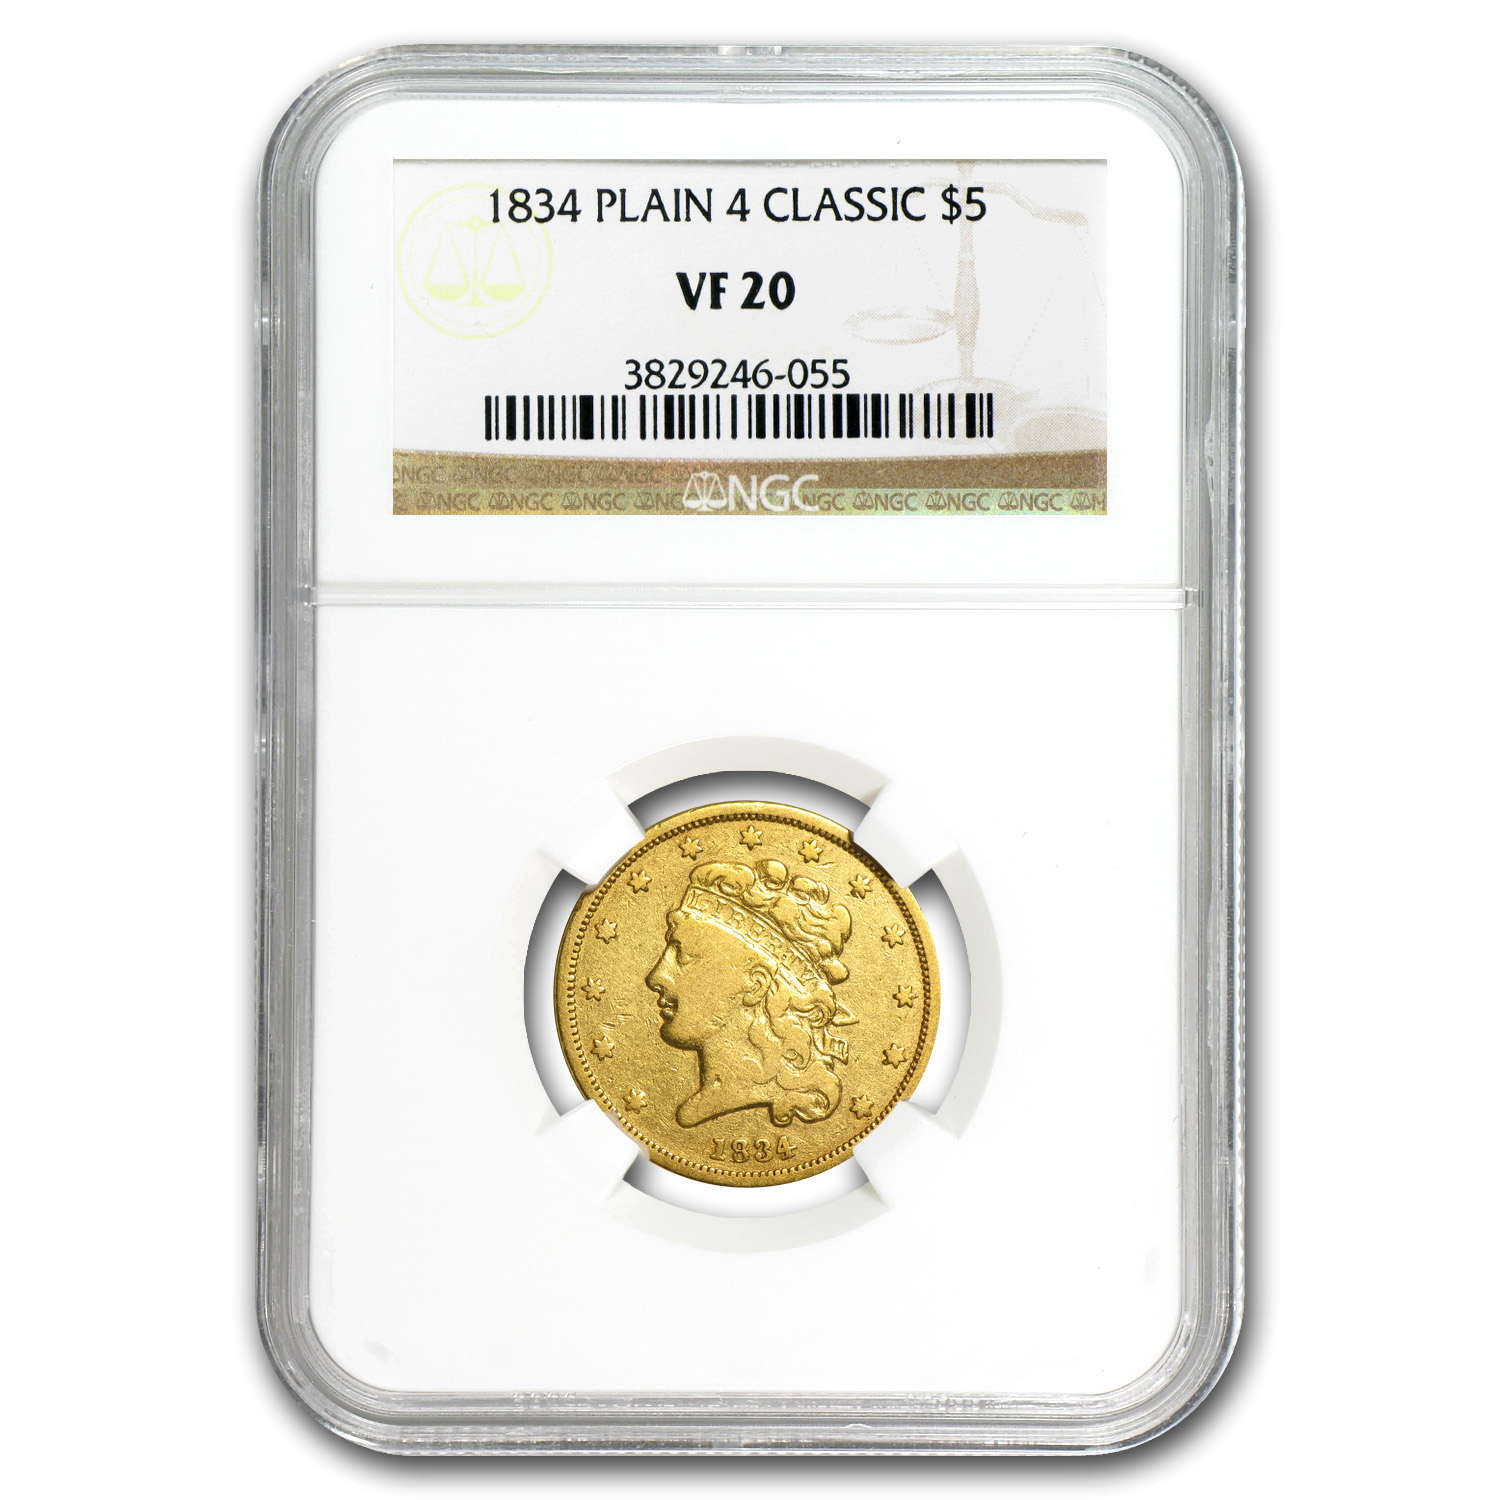 1834 $5 Gold Classic Head Half Eagle Plain 4 VF-20 NGC